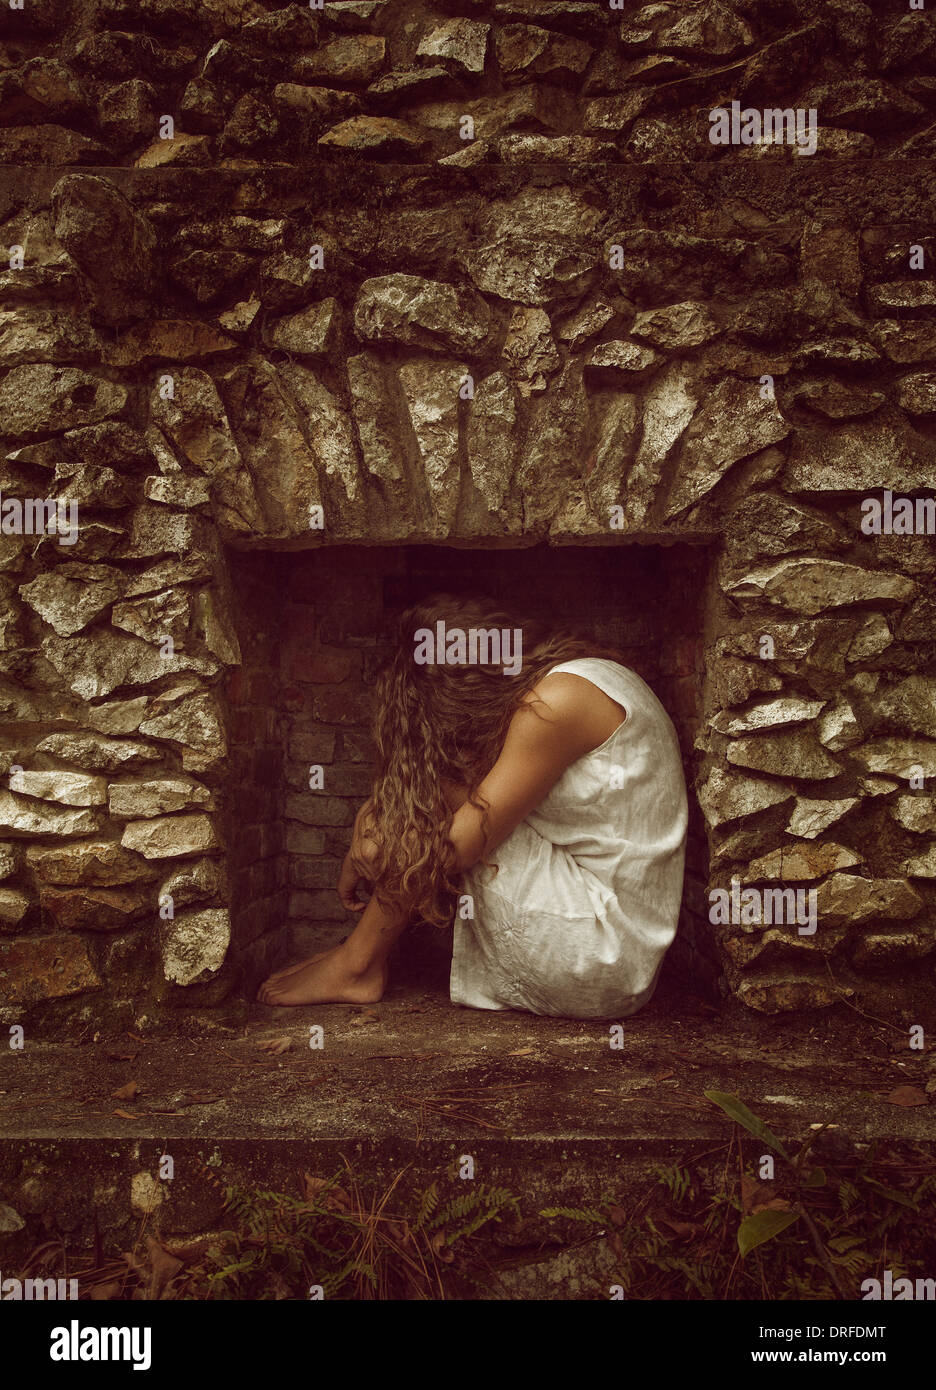 Woman curled up in fireplace in white dress - Stock Image